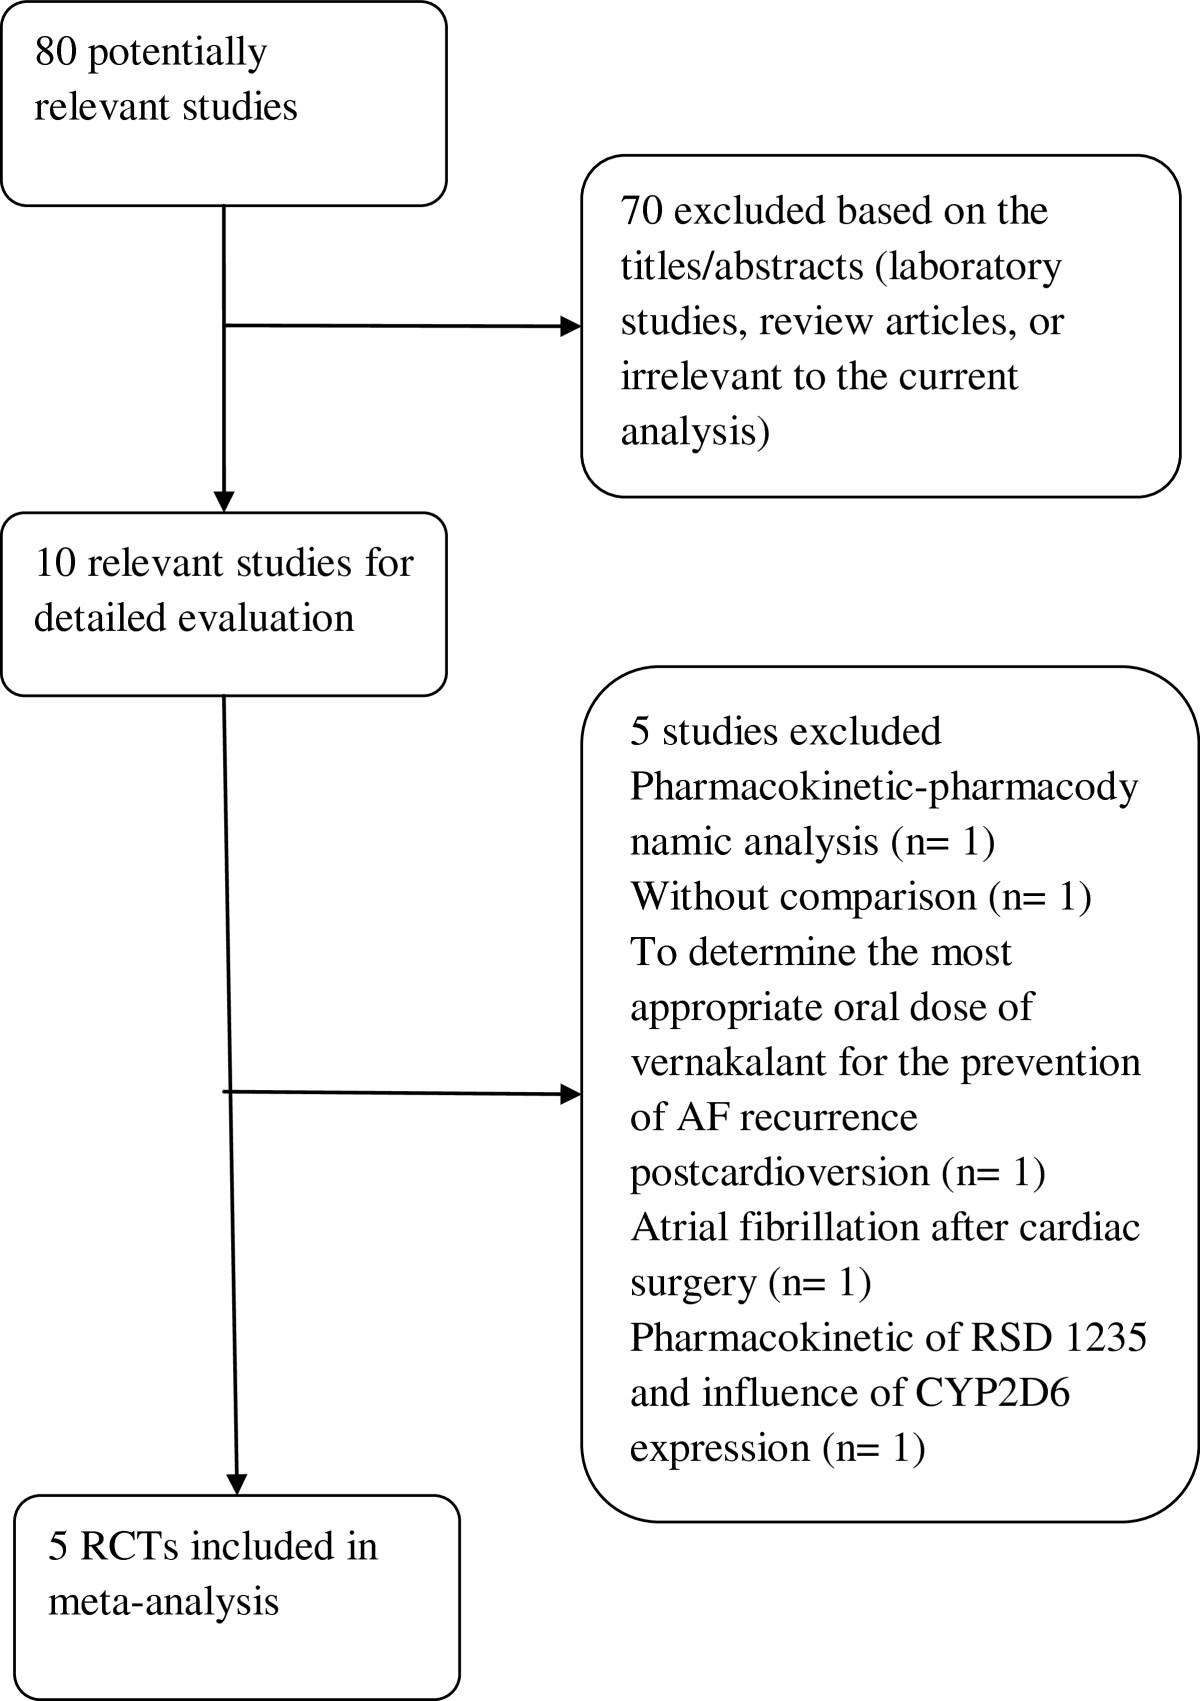 https://static-content.springer.com/image/art%3A10.1186%2F1756-0500-6-94/MediaObjects/13104_2013_Article_2123_Fig1_HTML.jpg